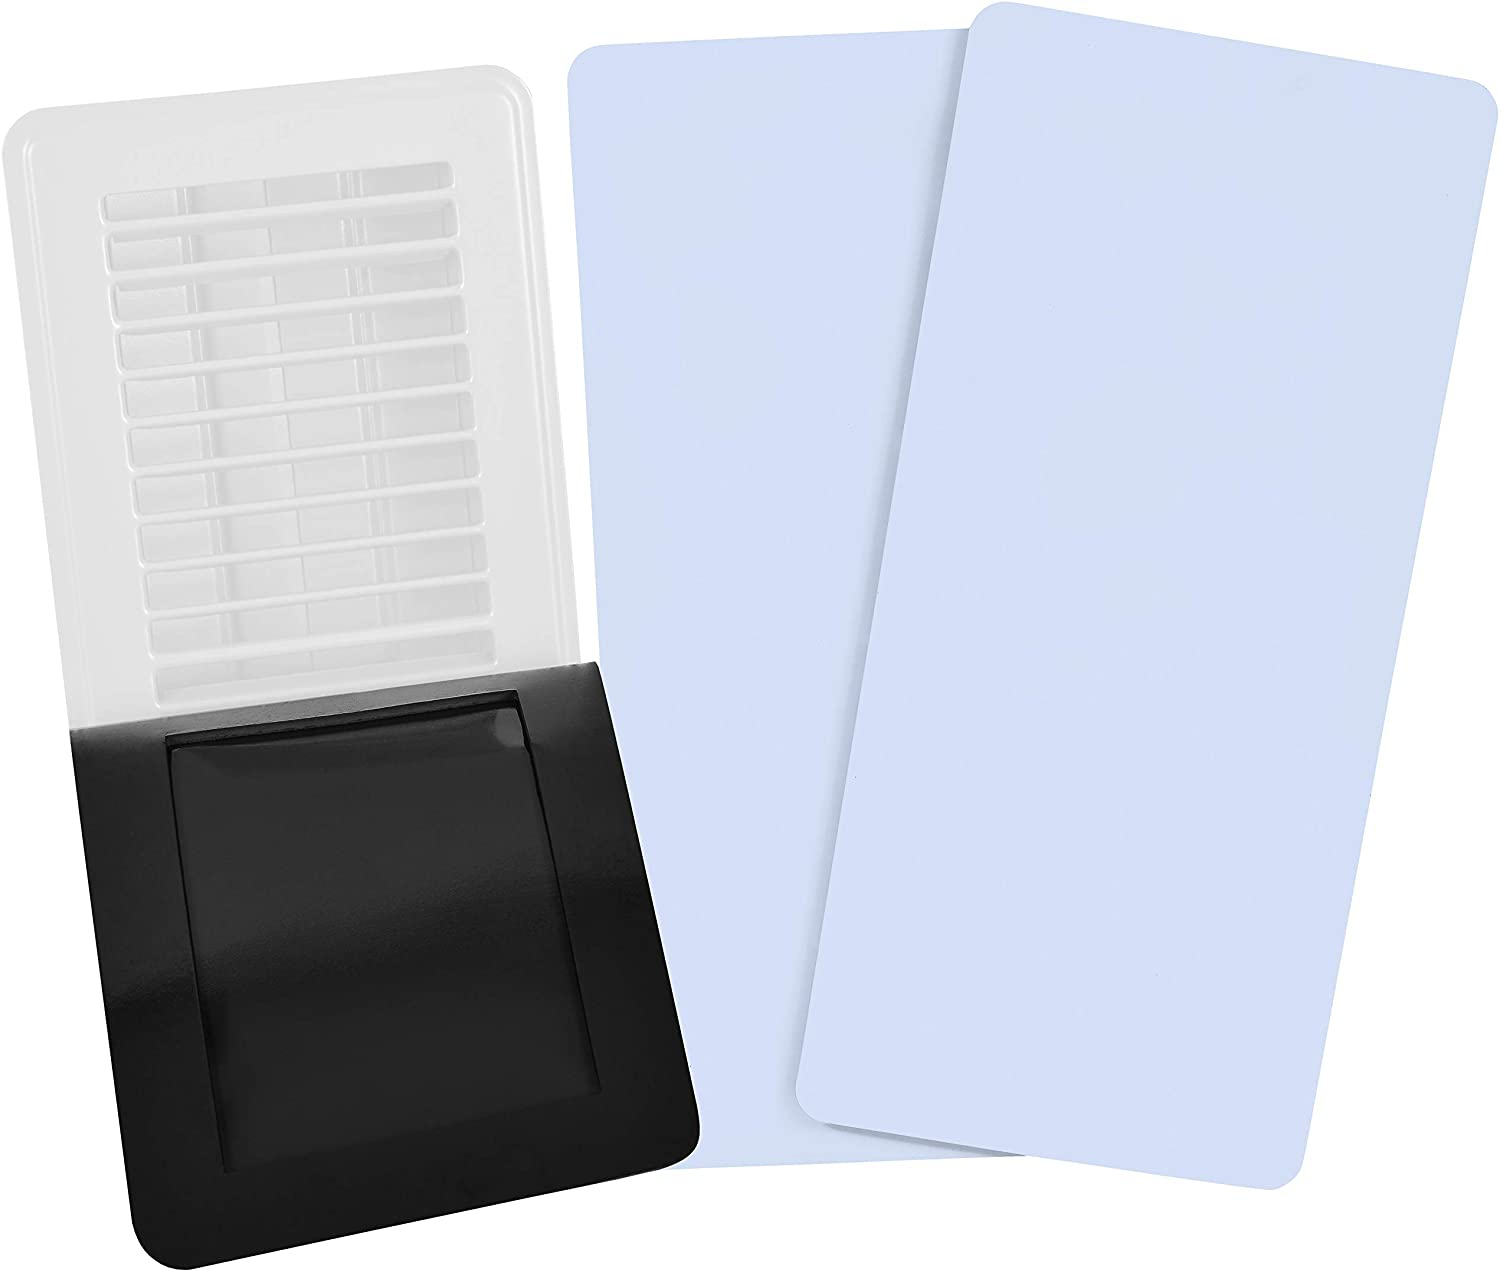 "SEAL360 Magnetic Vent Covers (3-Pack), Pockets for Complete Seal, 7.5"" X 12"" (White) for Floor, Wall, or Ceiling Vents and Air Registers, for RV, Home HVAC and AC Vents, Vent Not Included"